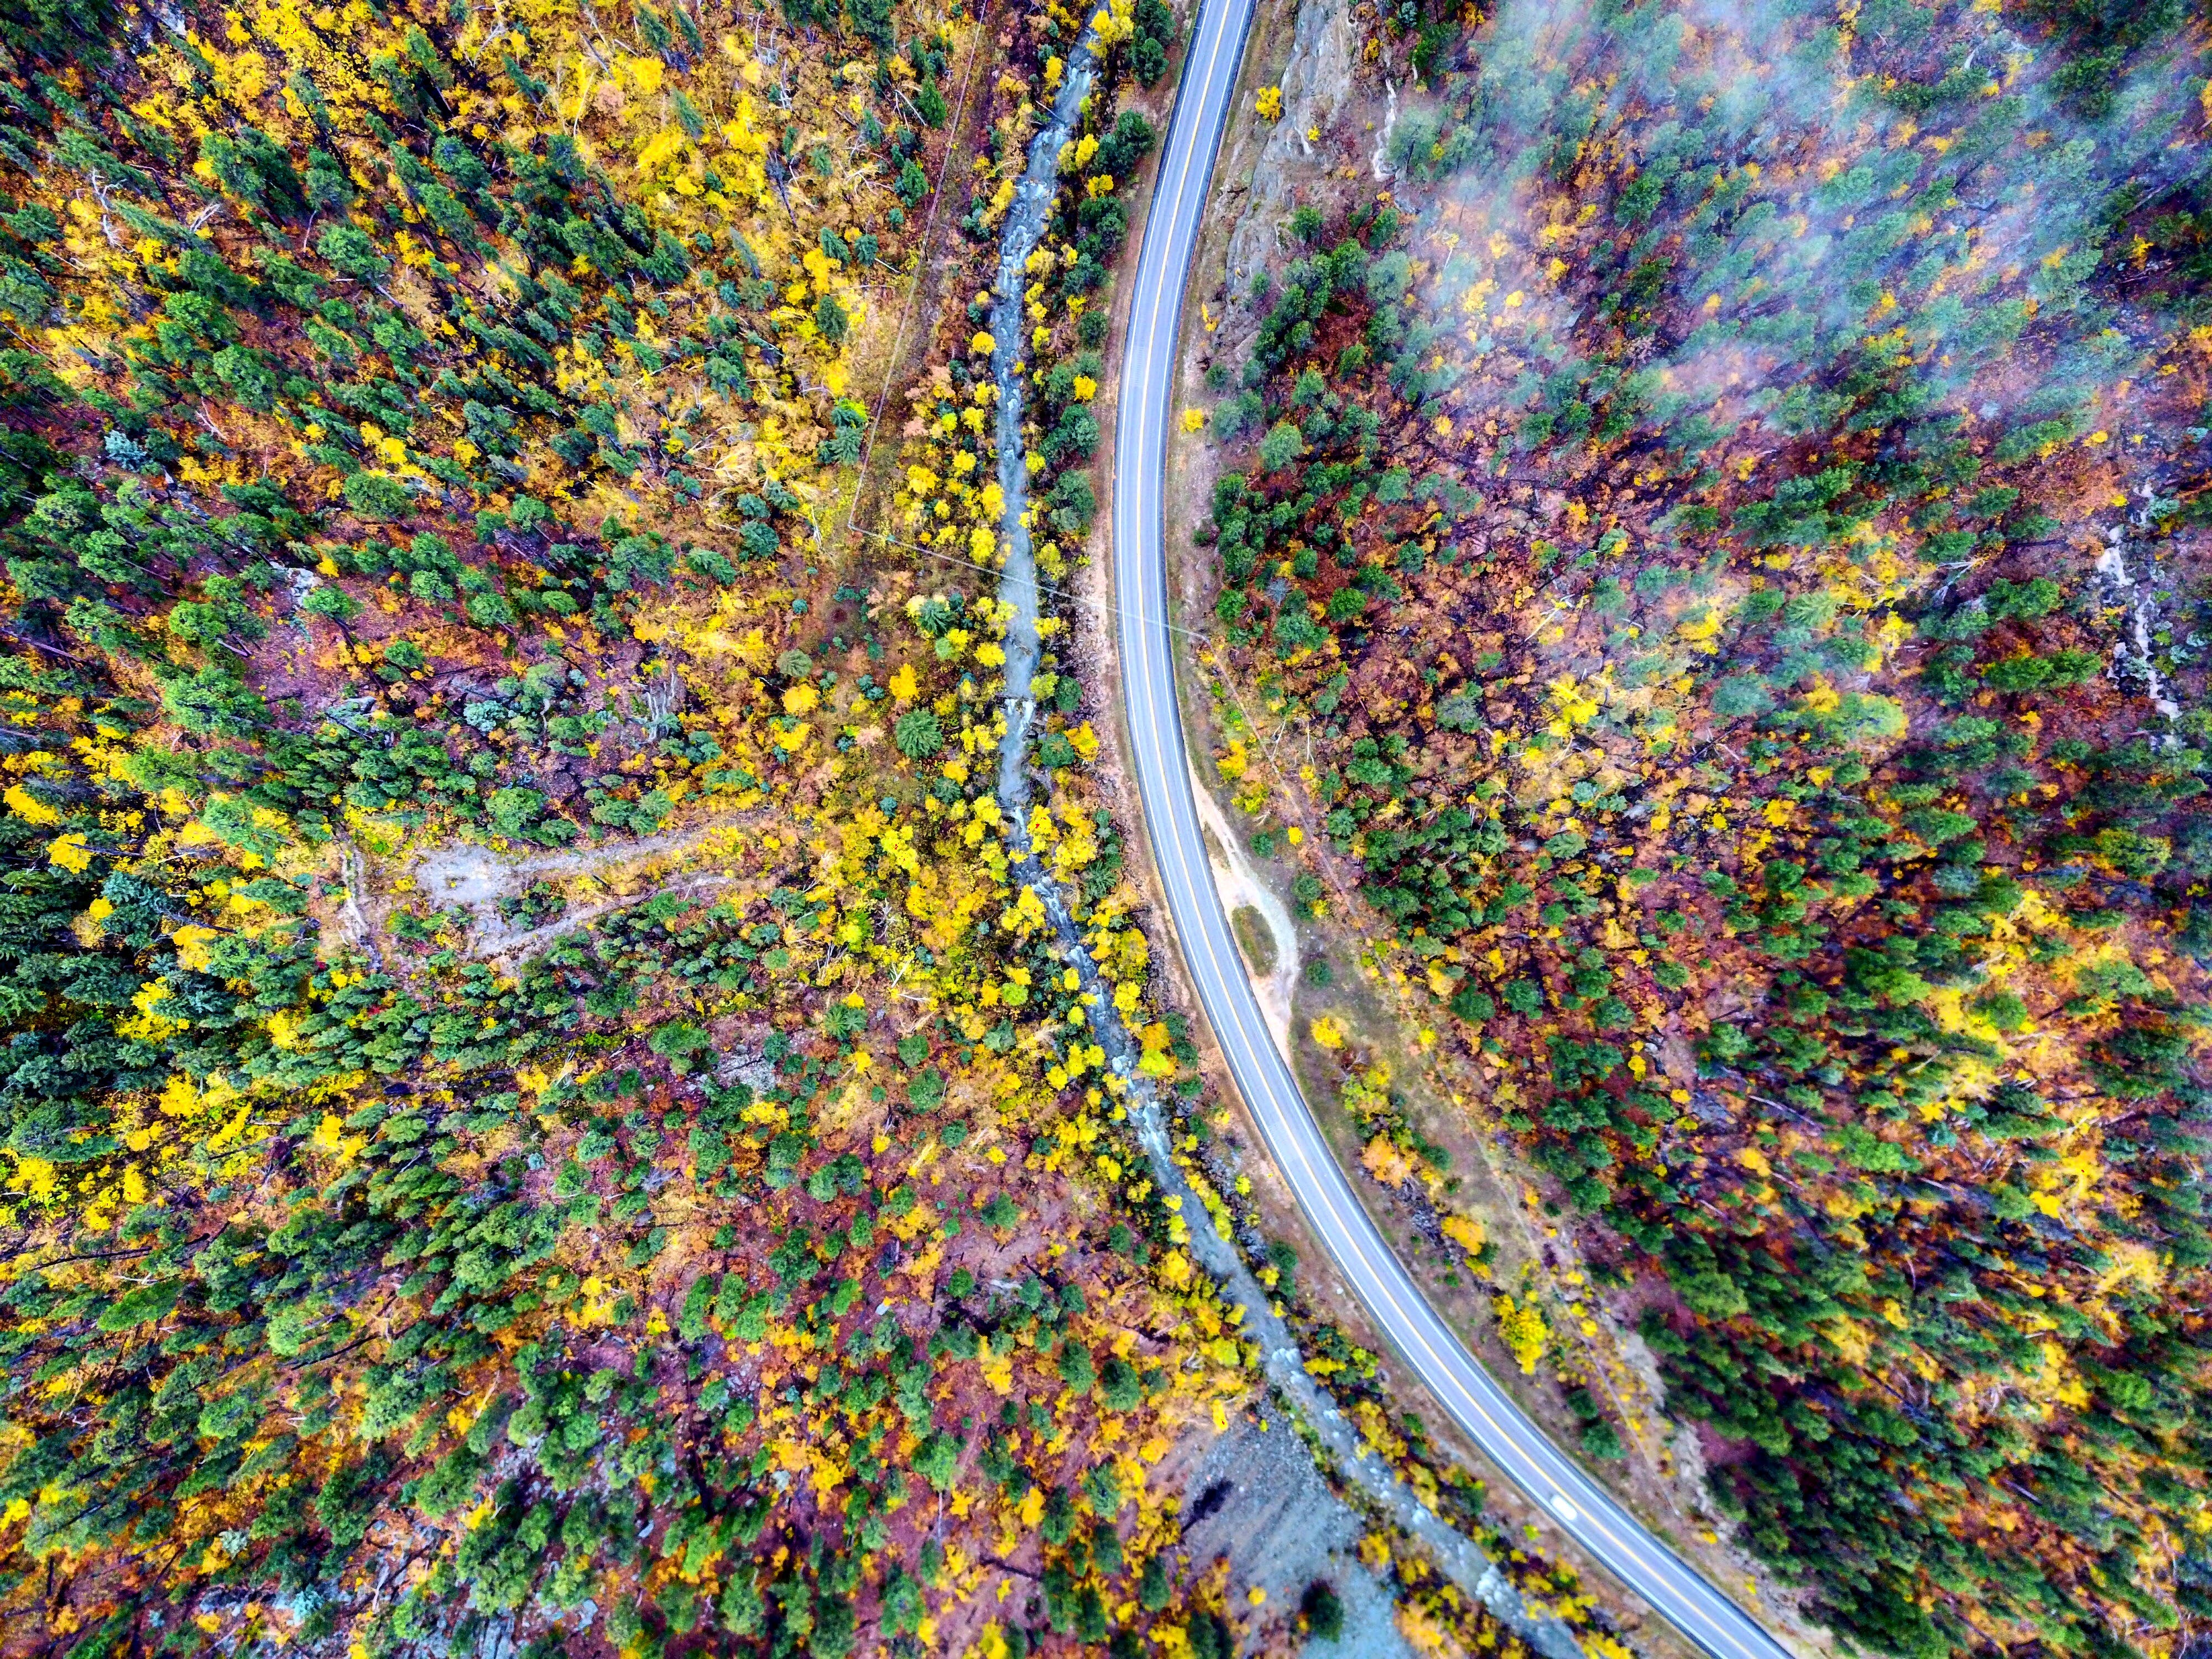 Top View Photo of Road Surrounded By Trees